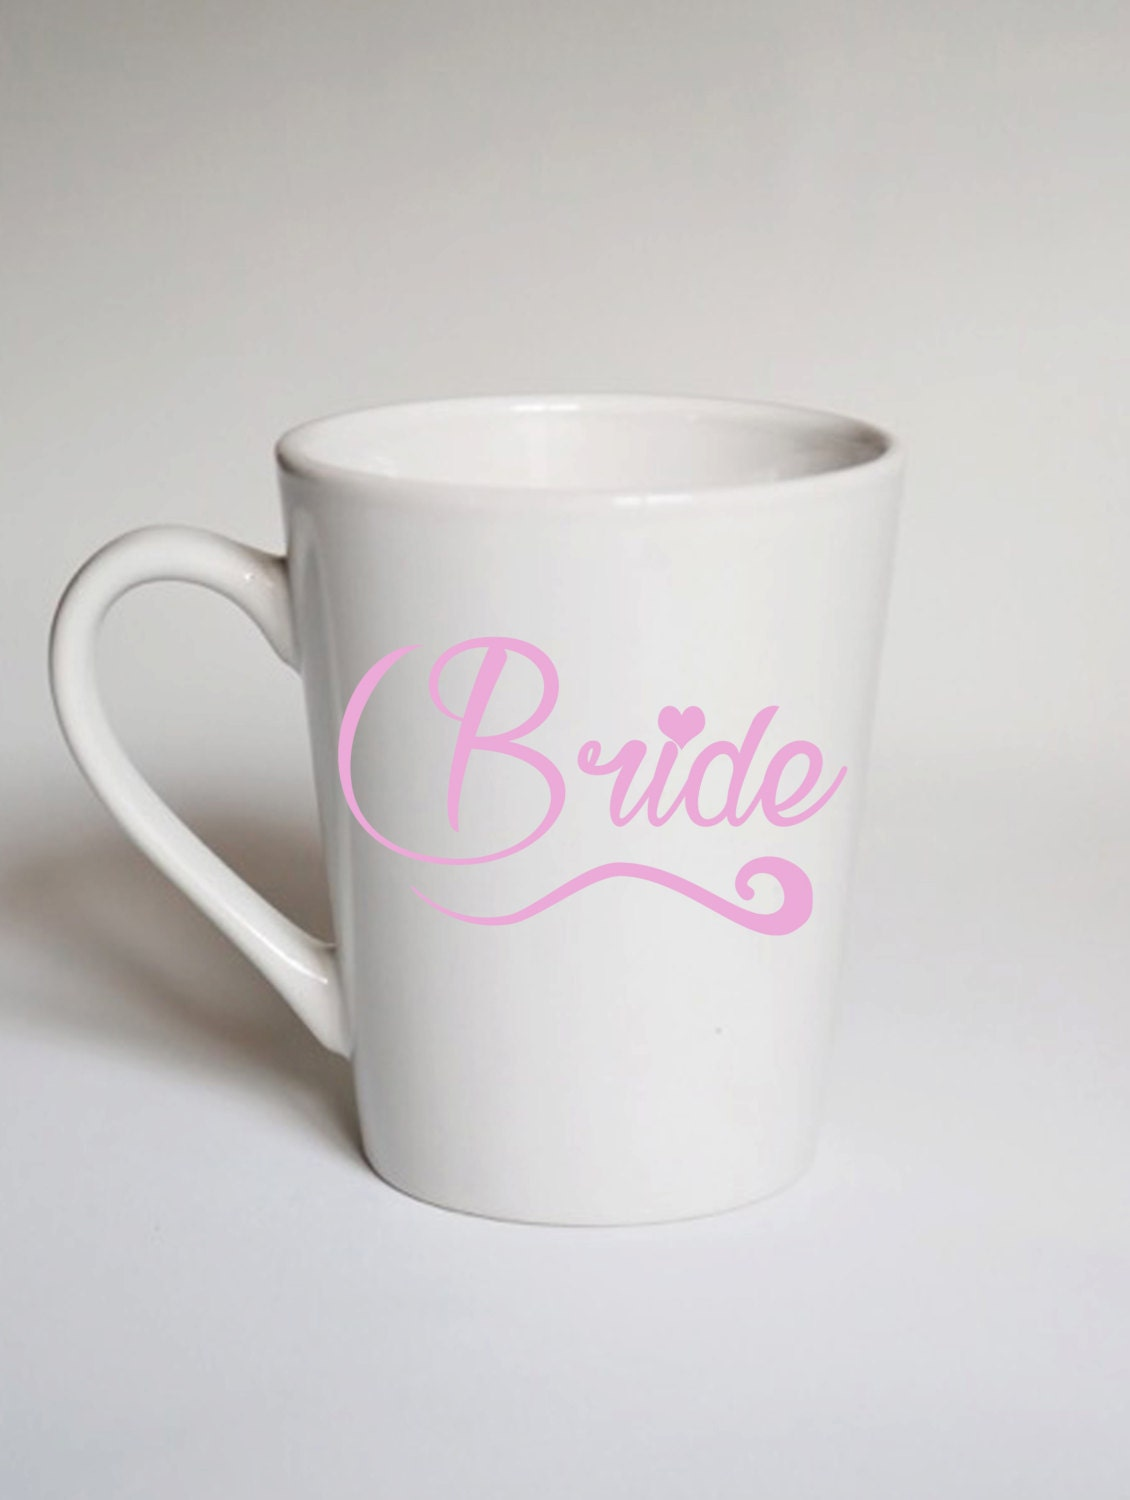 Bride Coffee Mug Perfect Gift For Your Wife Great Gift For